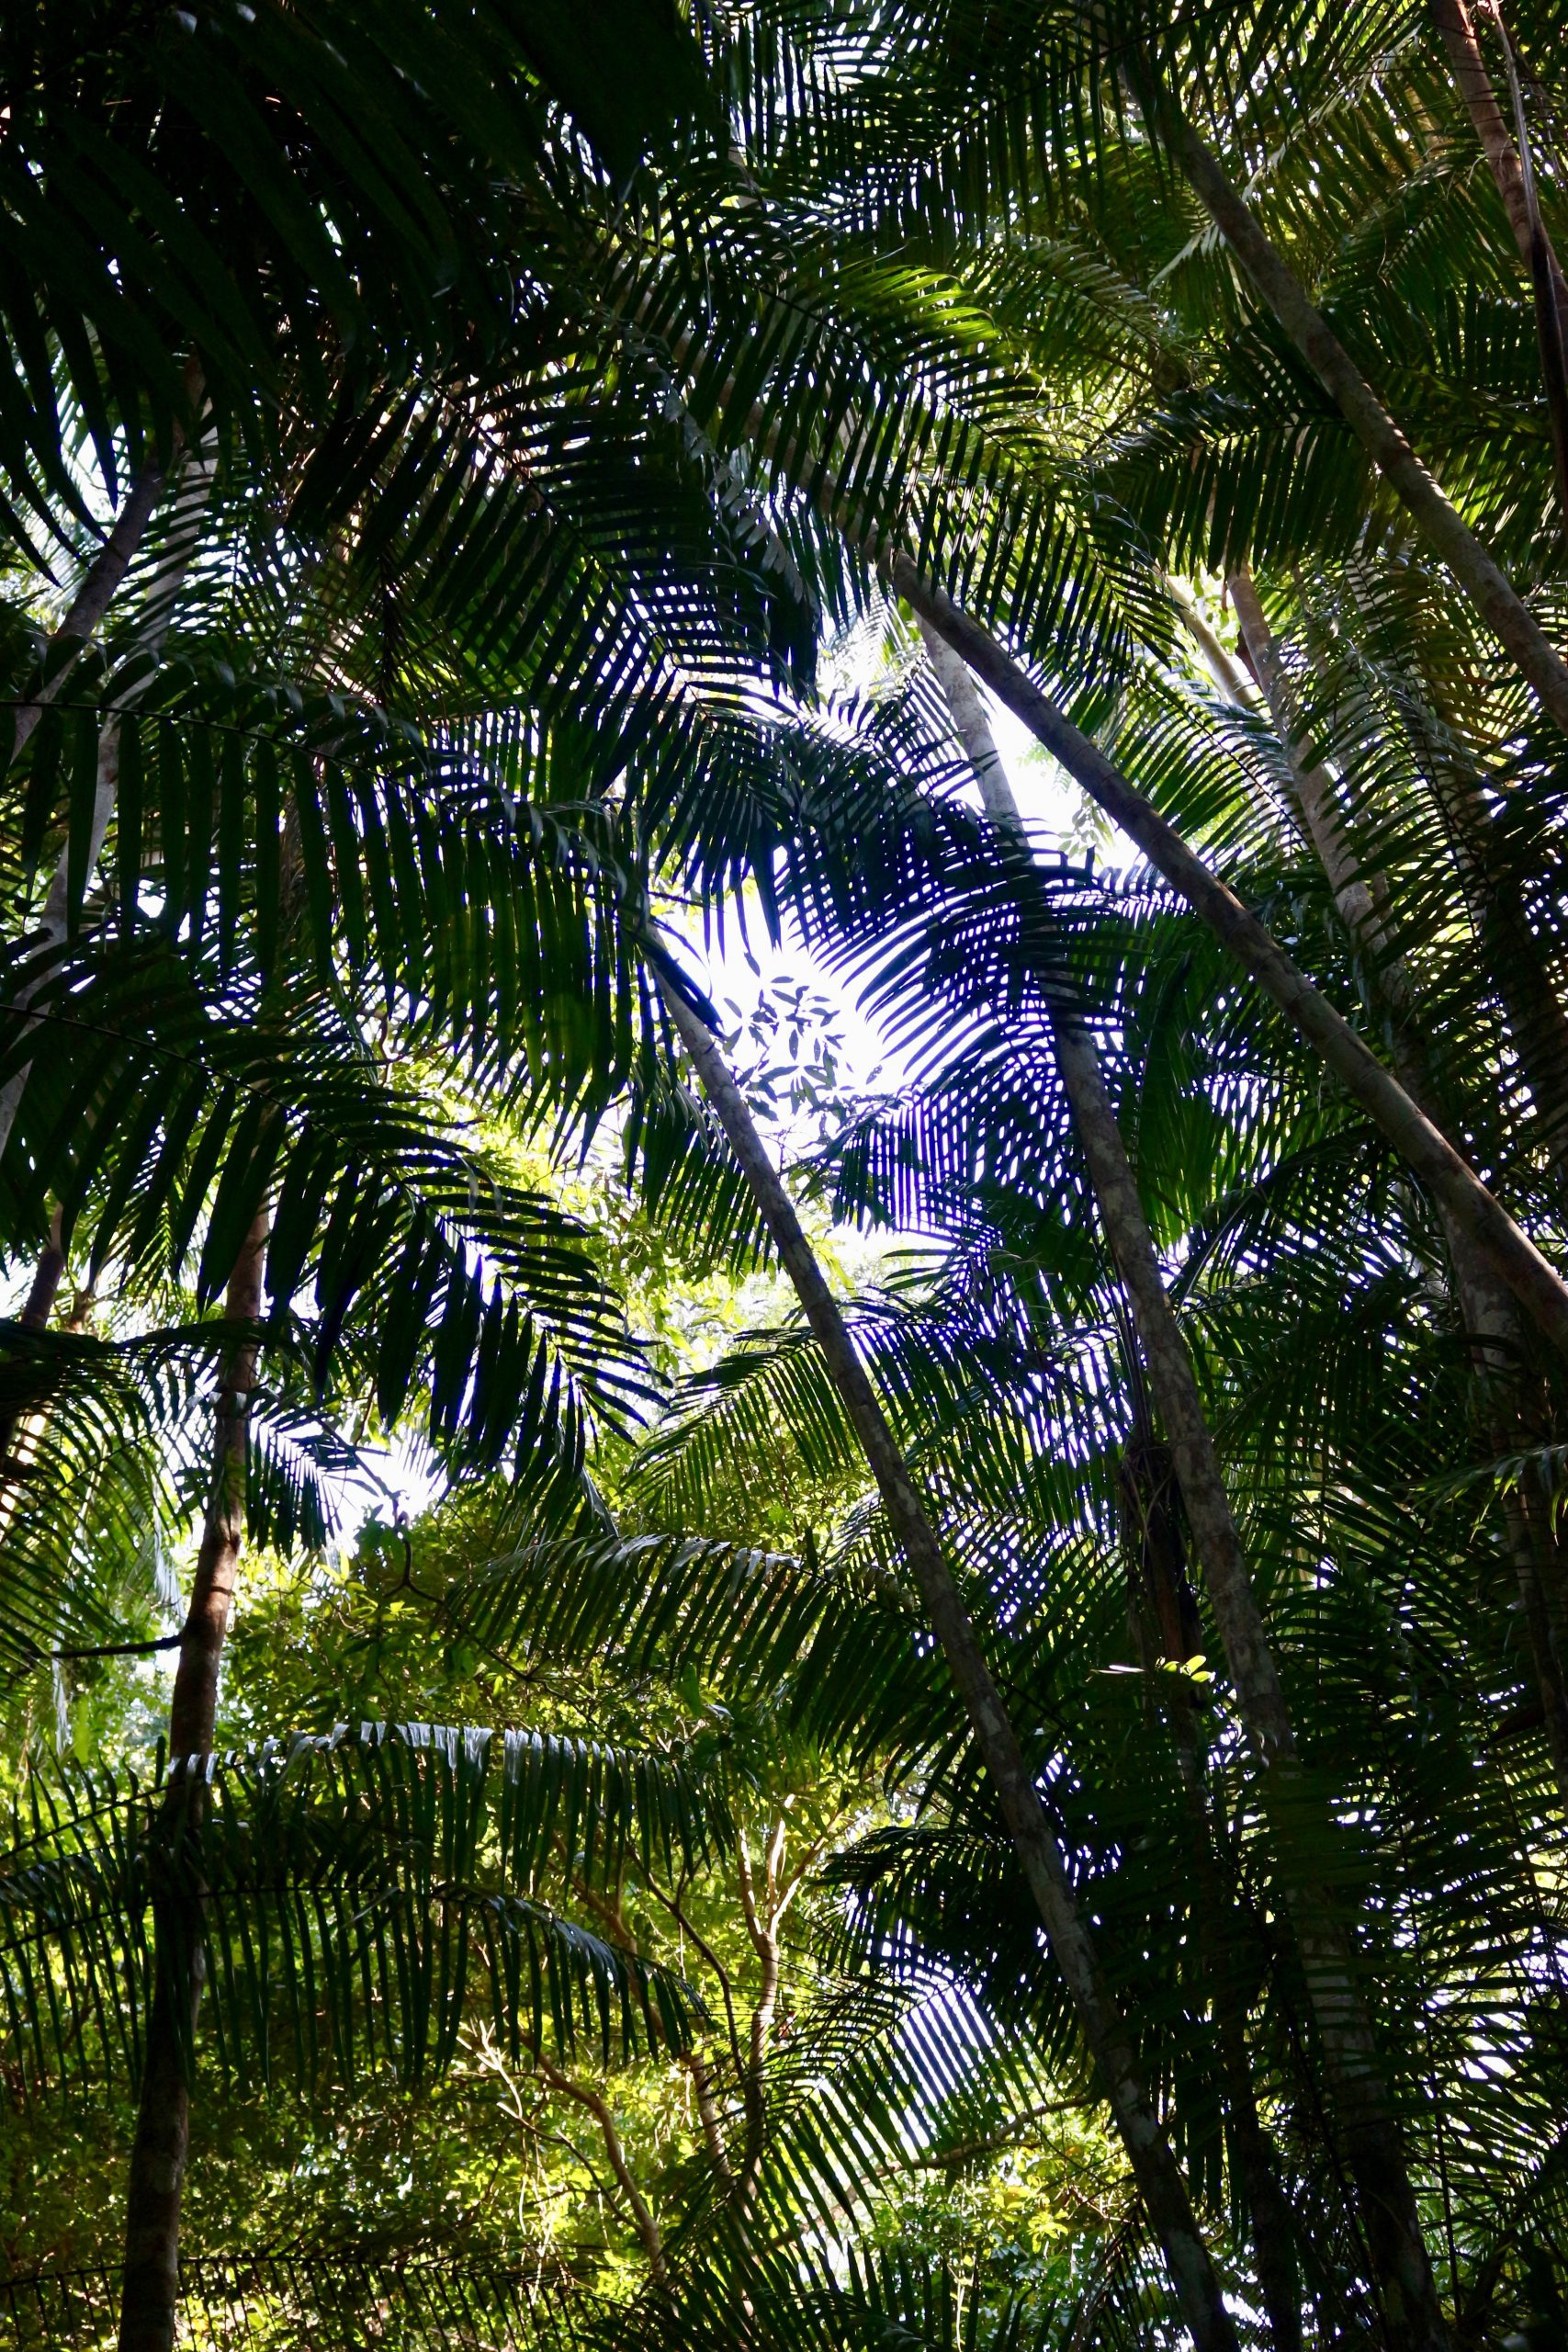 Looking up at green palm trees at an eco-resort in a jungle in Thailand. ©KettiWilhelm